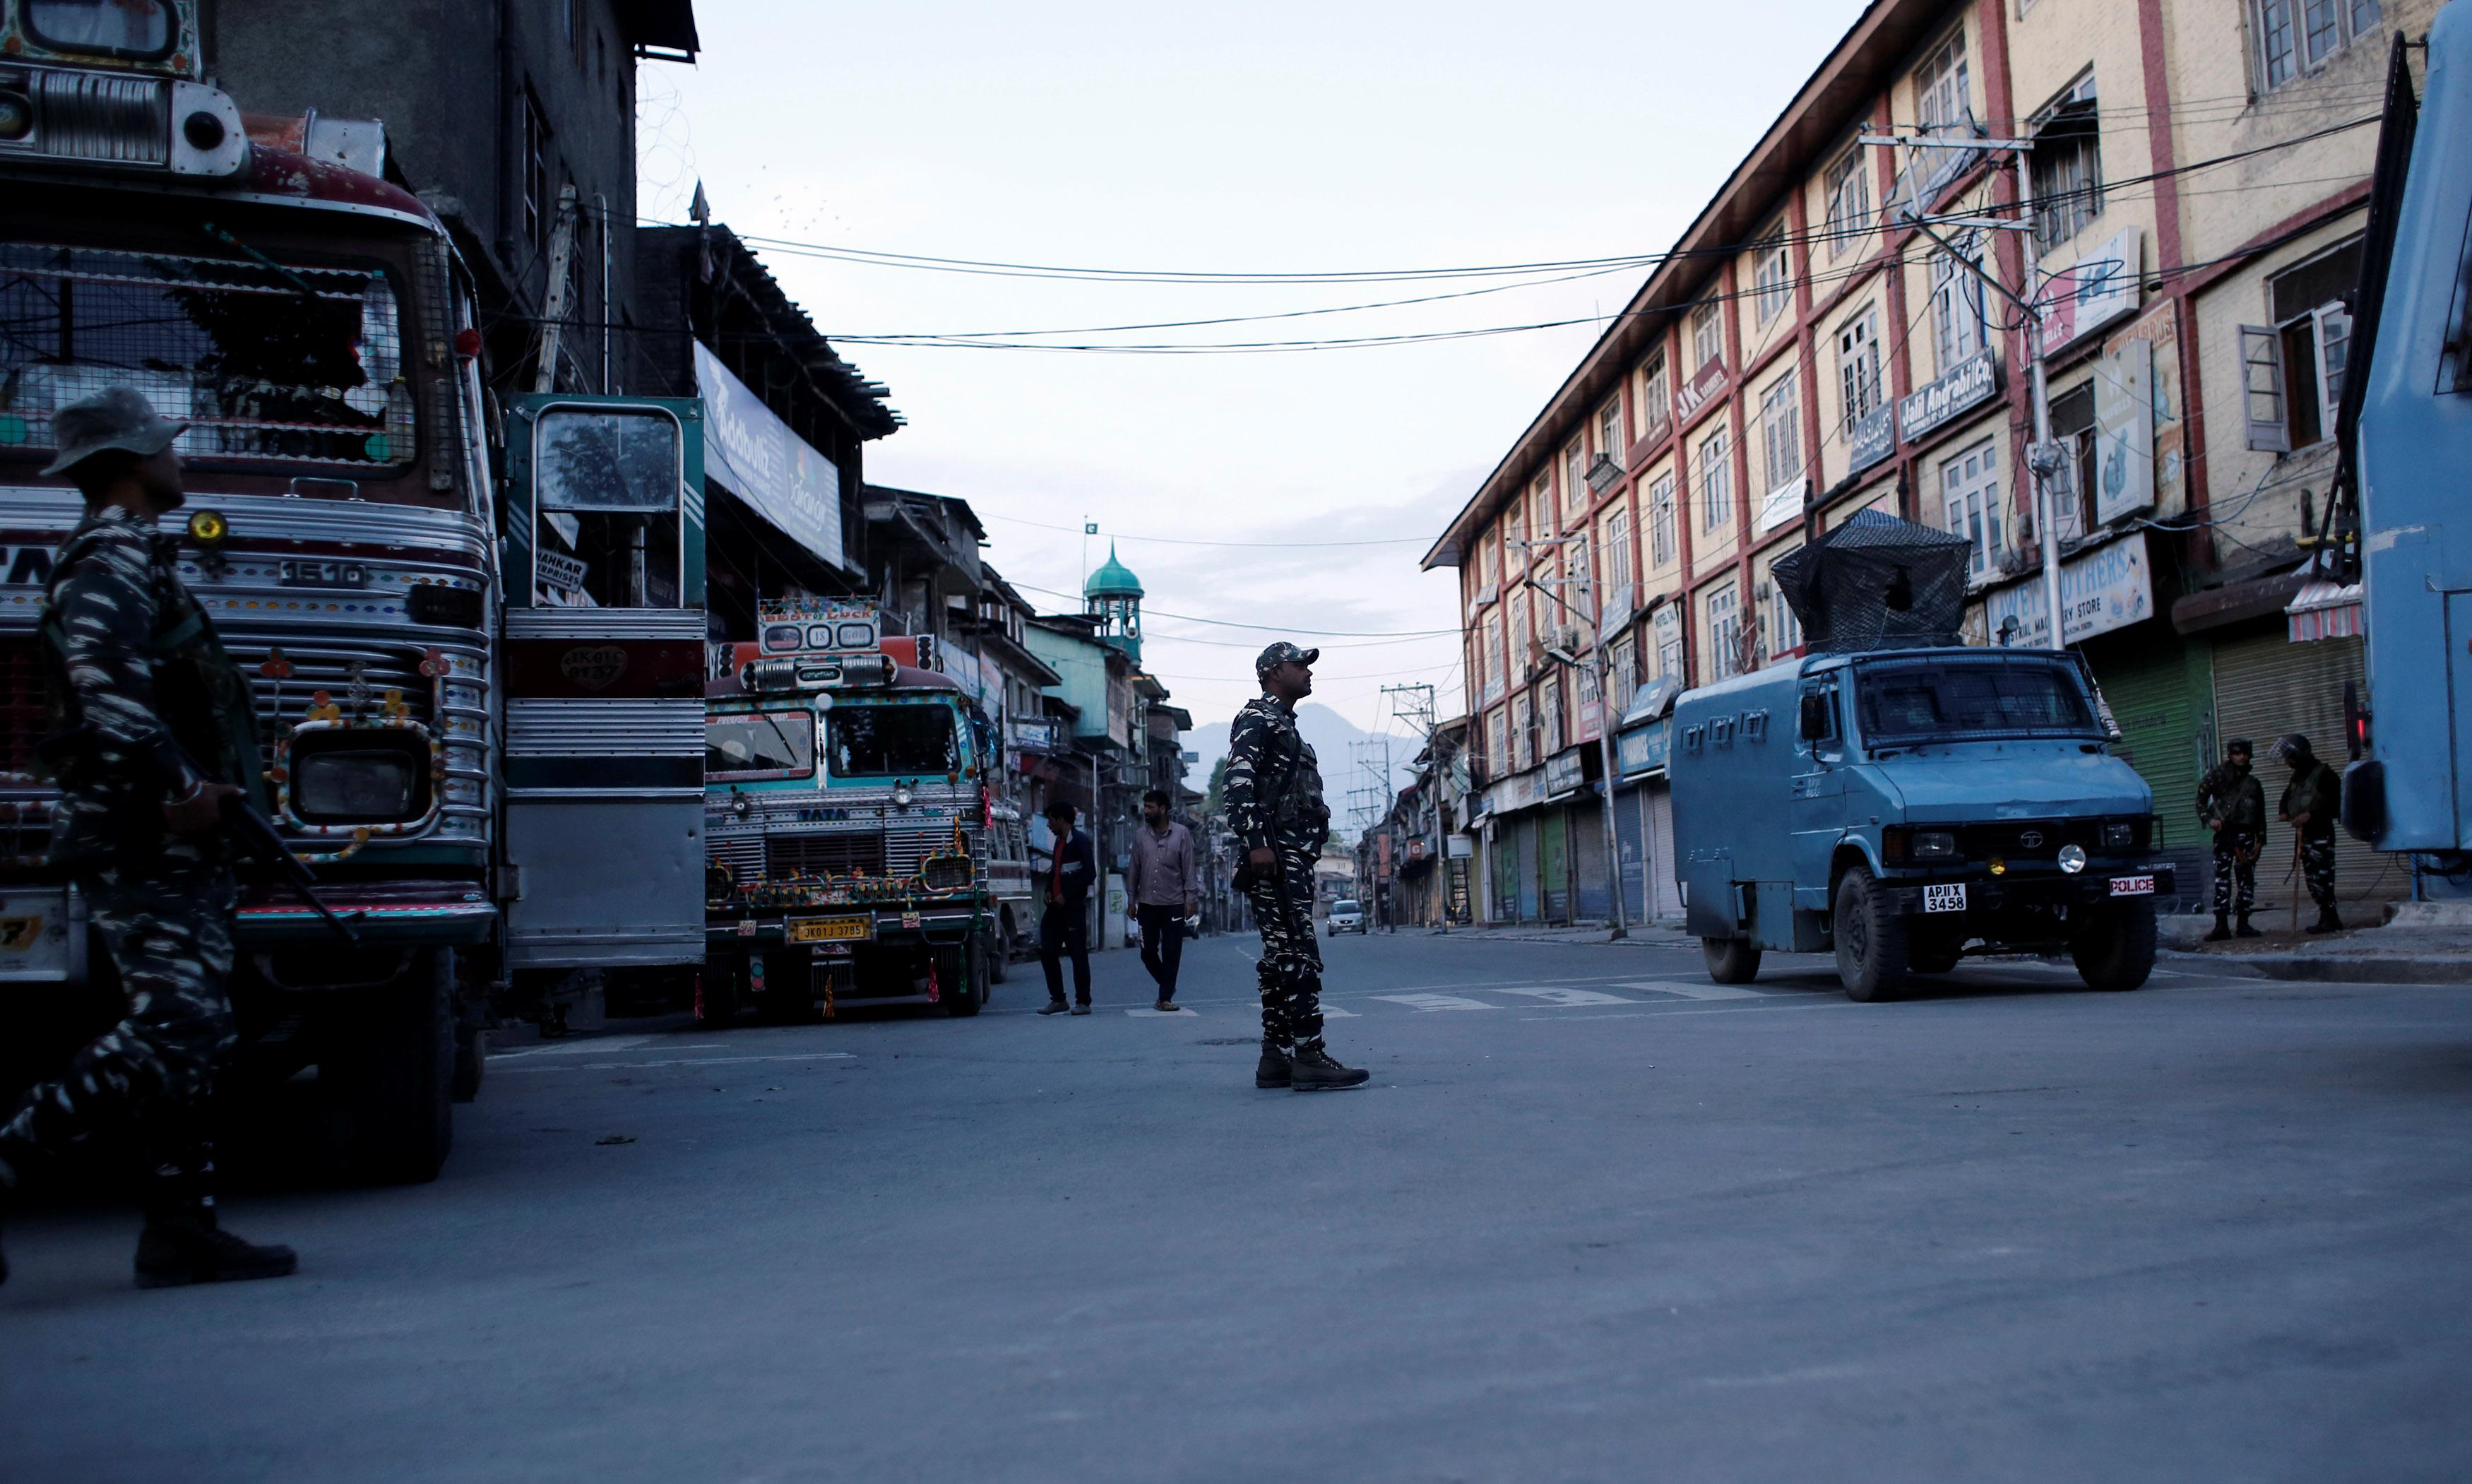 Kashmir: suspected militant killed in Indian security operation